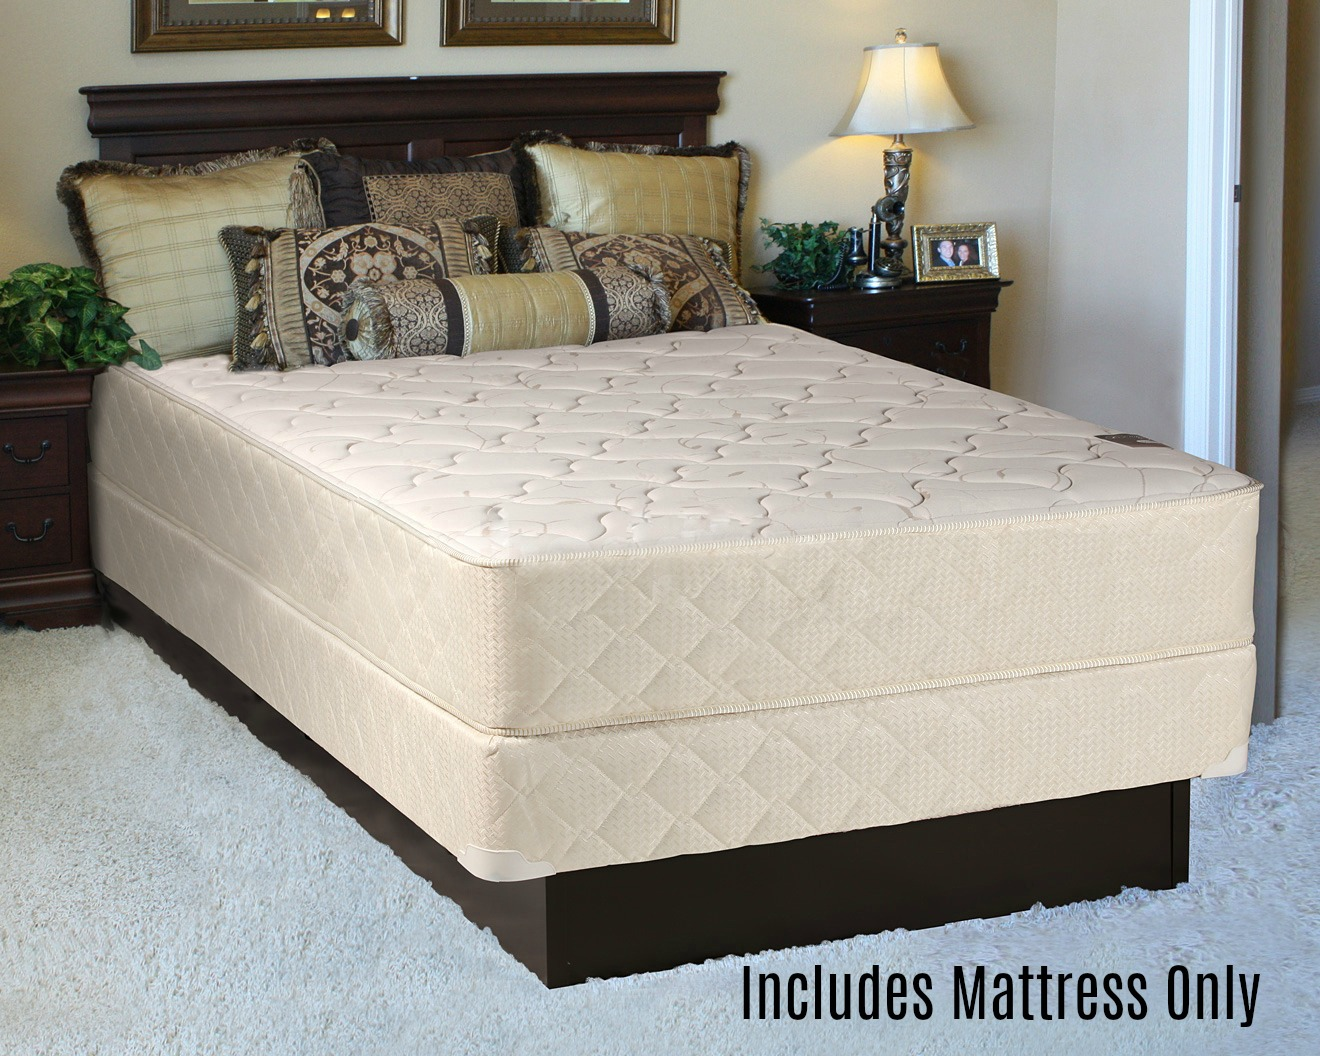 "Spring Solution, 10"" Fully Assembled Innerspring Back Support Long Lasting Mattress, Full XL Size by Comfort Bedding"